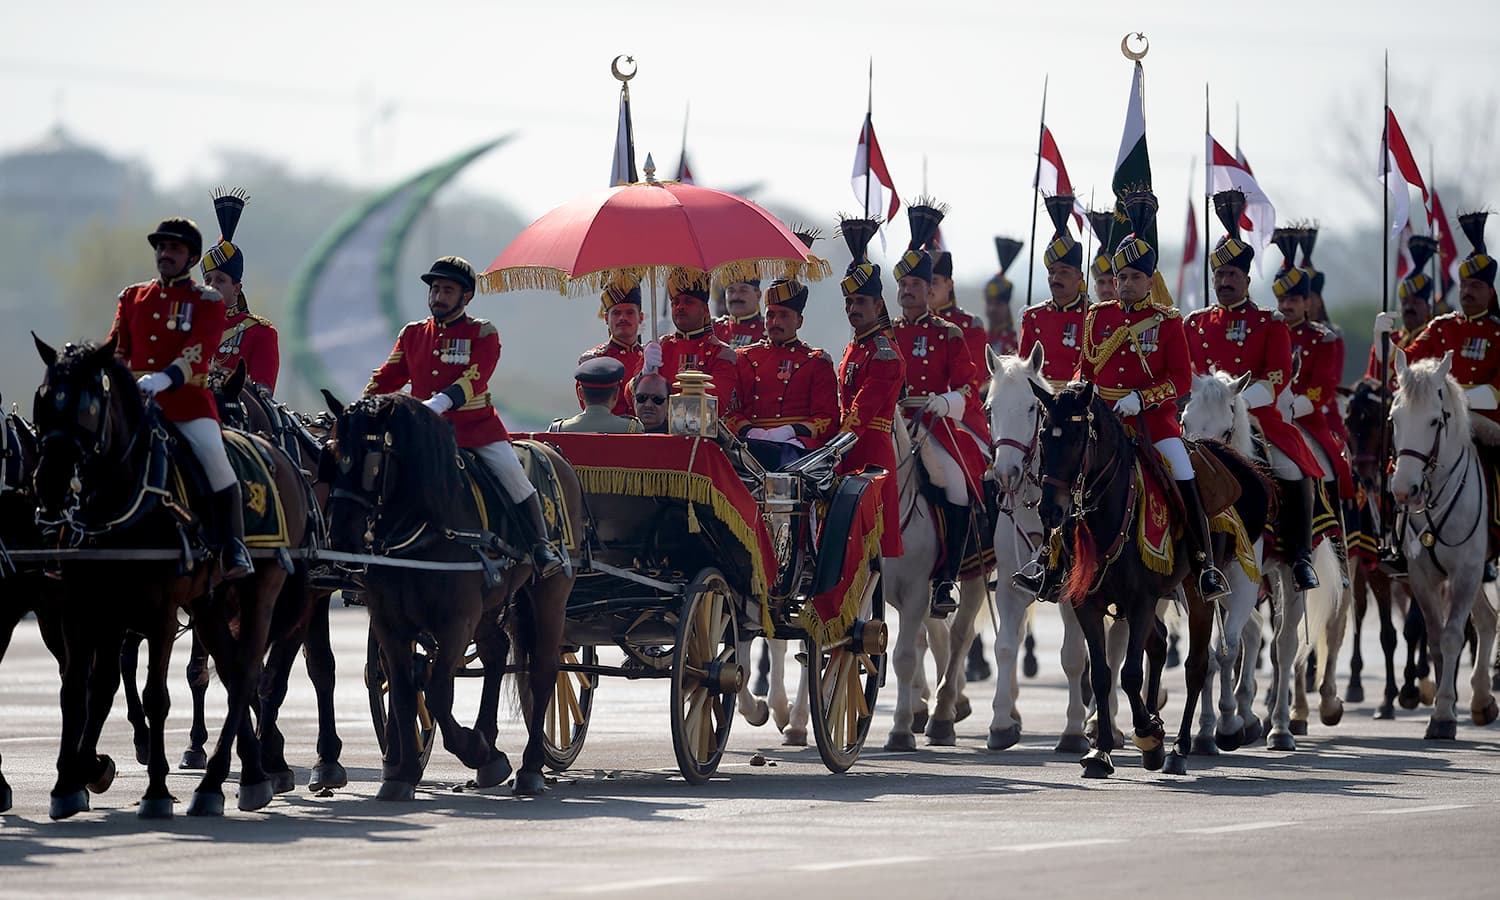 President Mamnoon Hussain arrives at the venue for the Pakistan Day military parade in islamabad. ─AFP